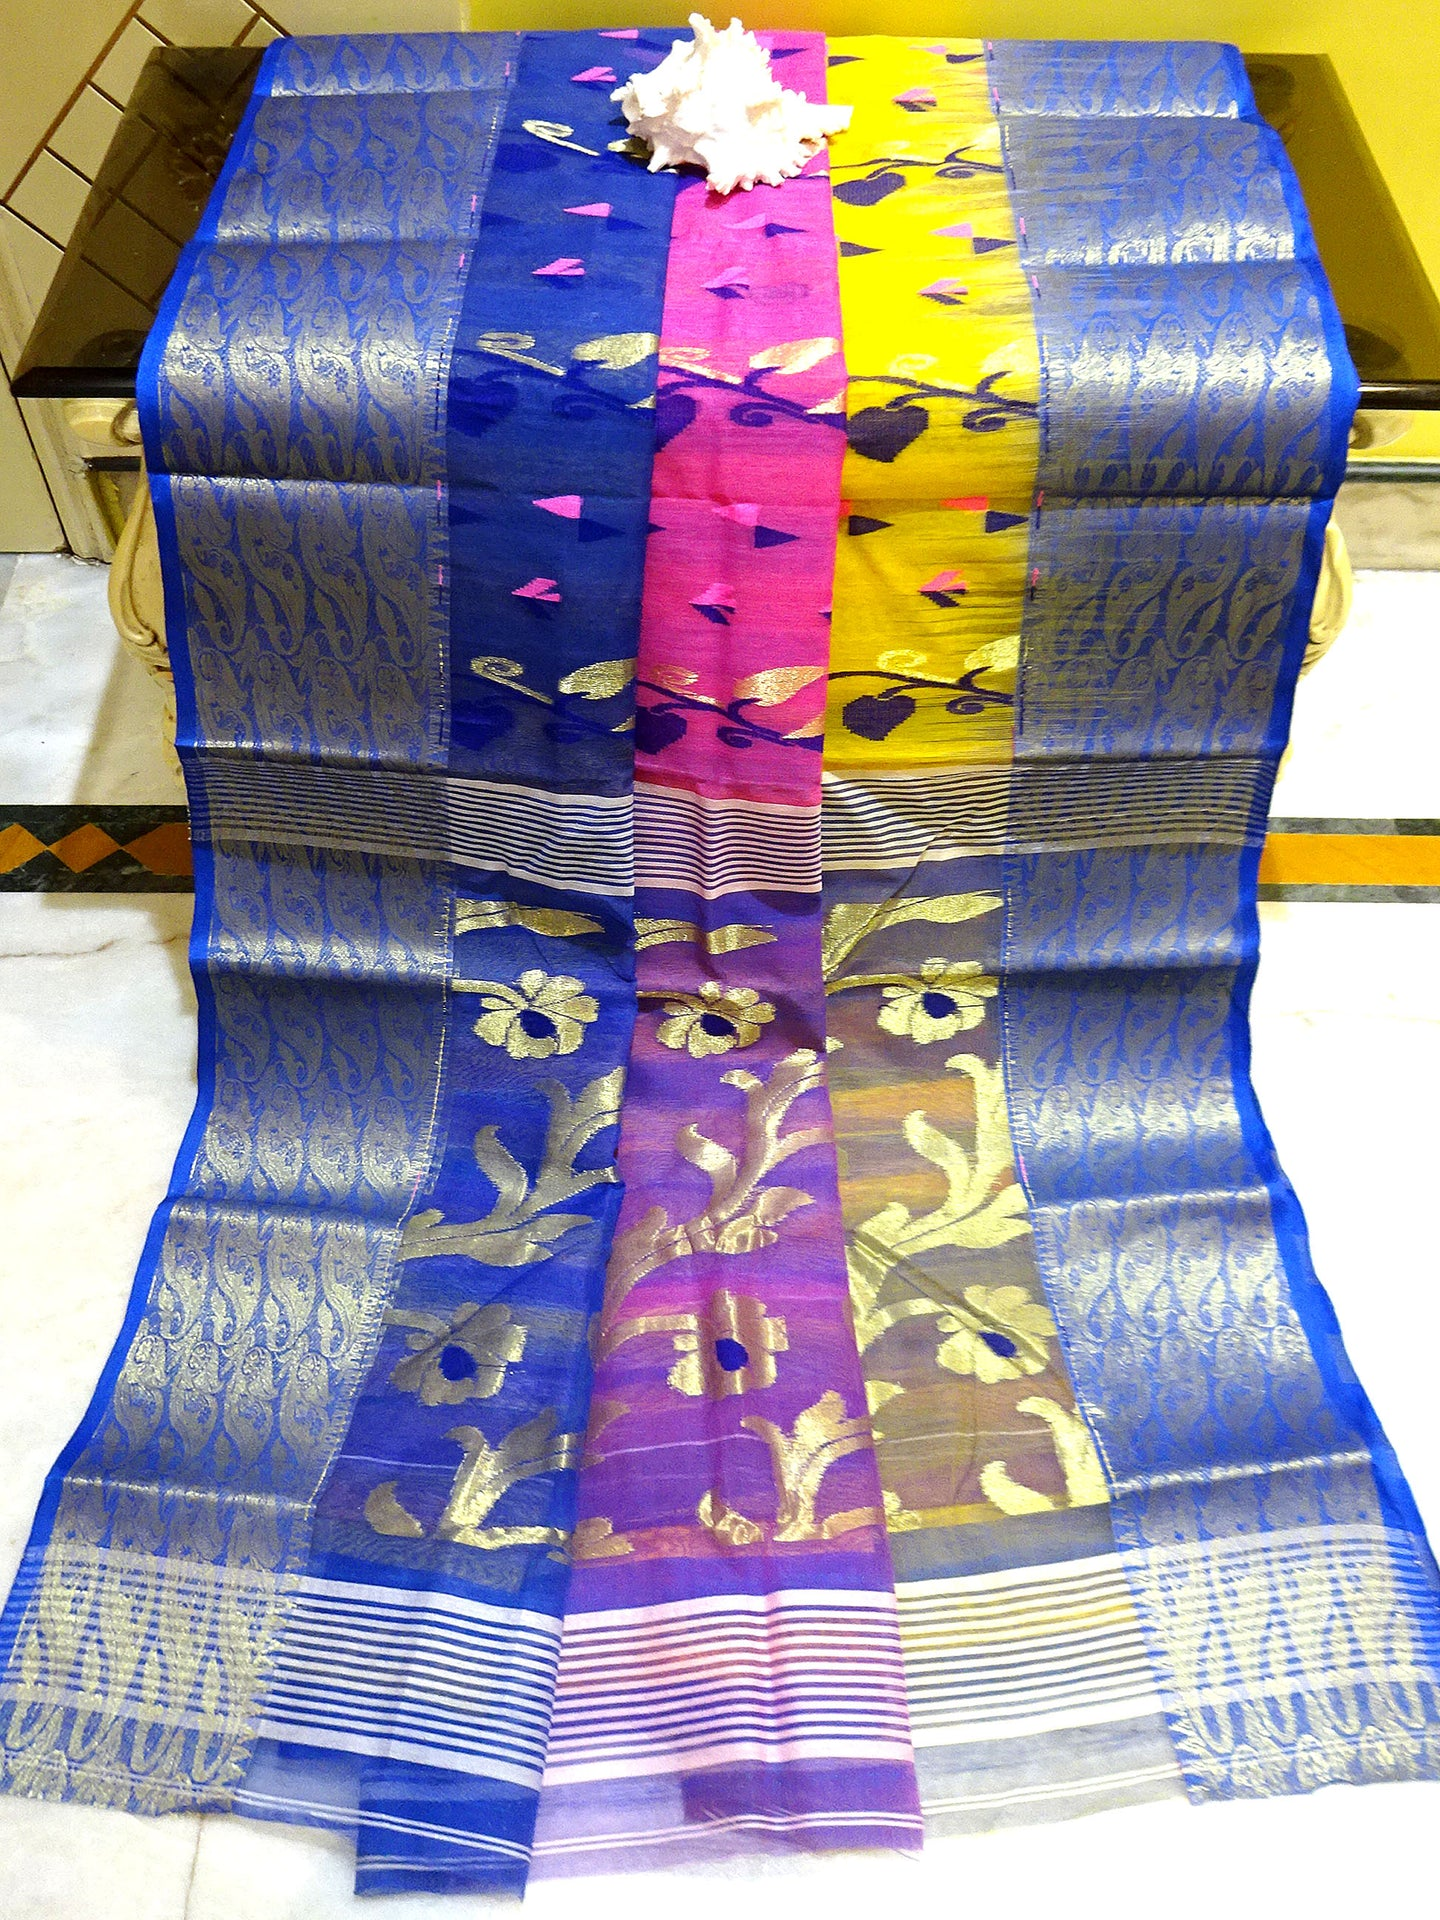 Bengal Handloom Tant Tussar Silk Saree in Royal Blue, Yellow and Pink from Bengal Looms India